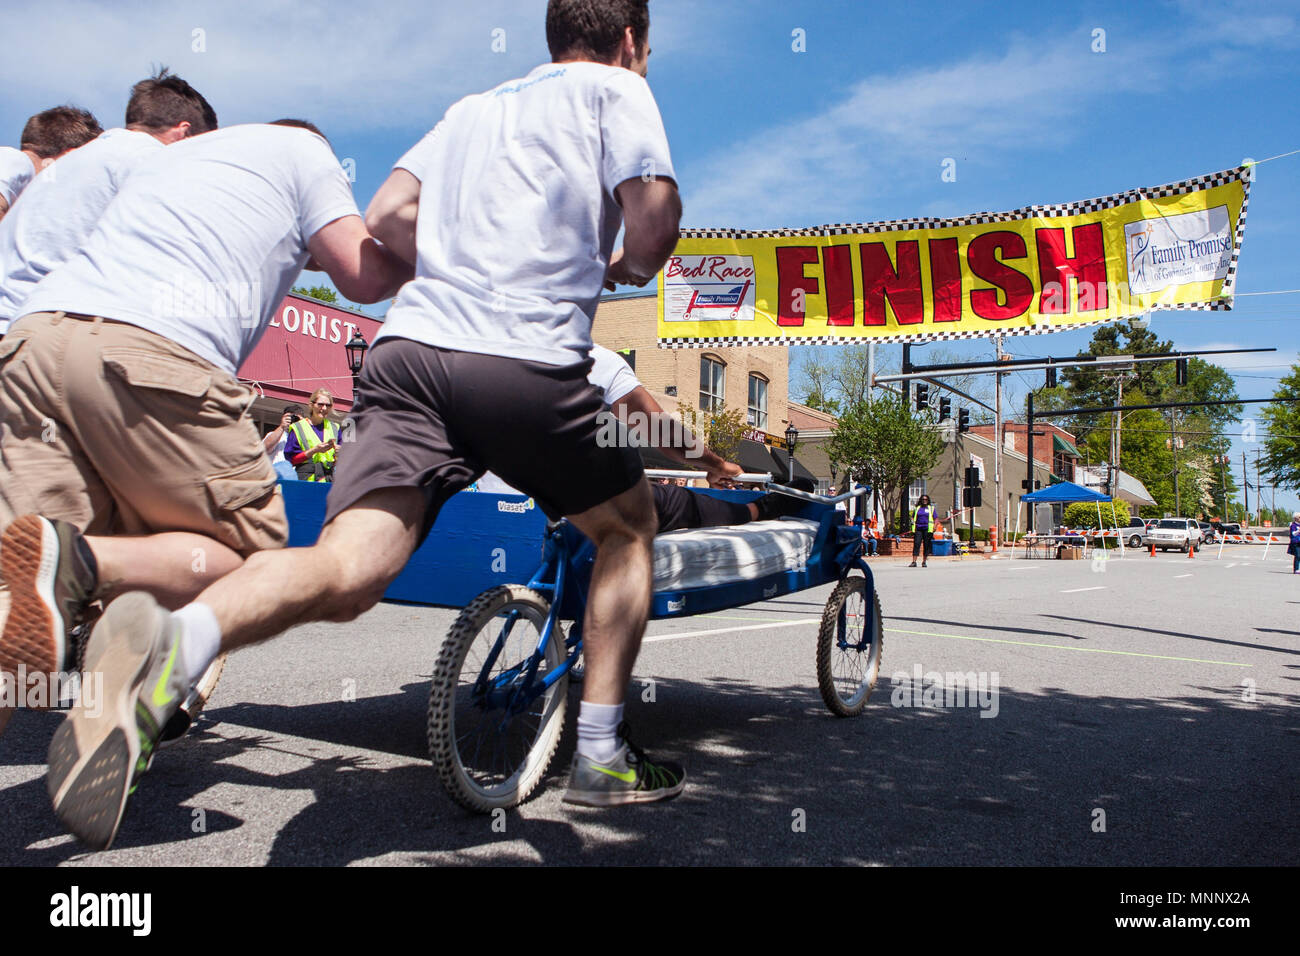 A team pushes a bed on wheels toward the finish line of a charity fundraiser event